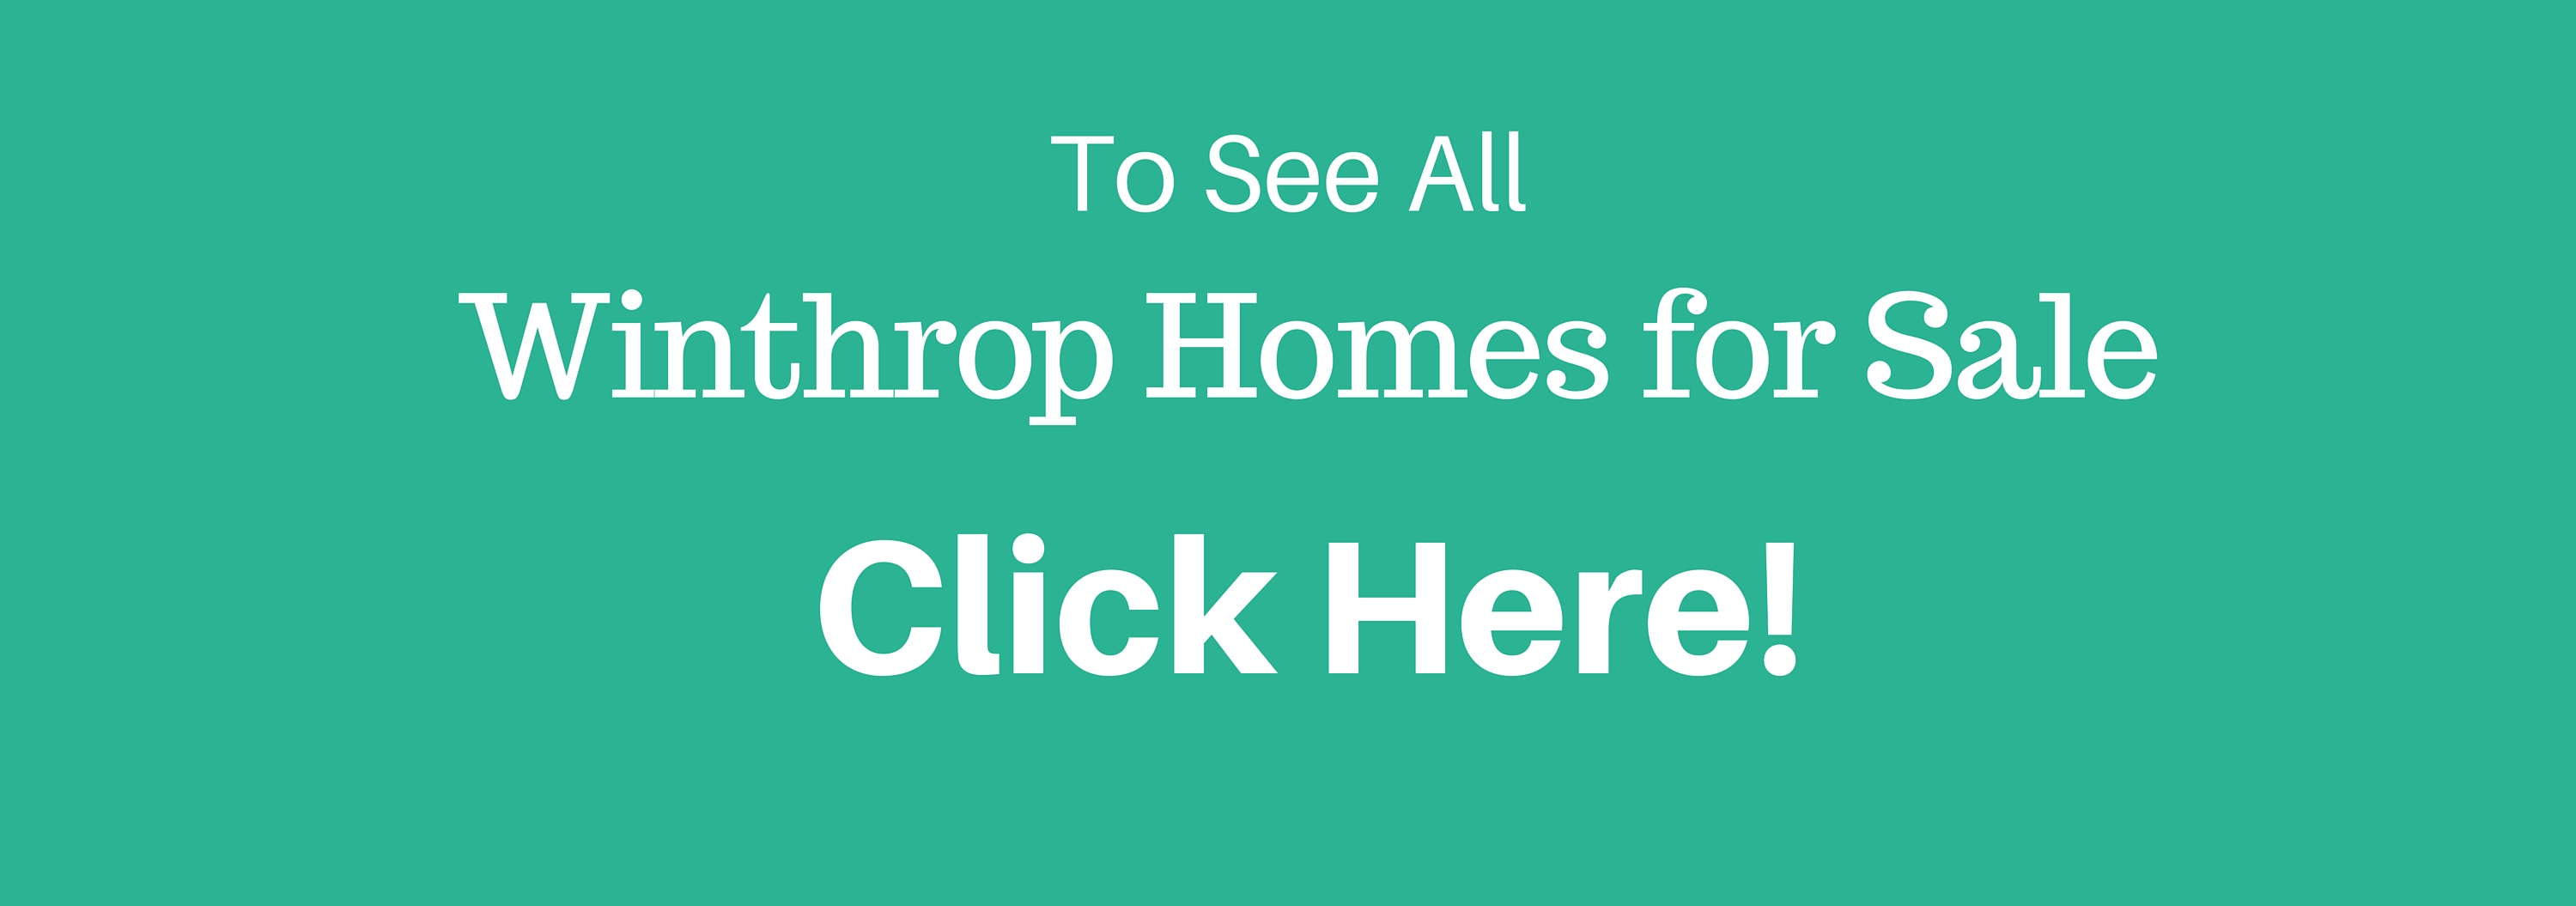 To See All Winthrop Homes for Sale Click Here!